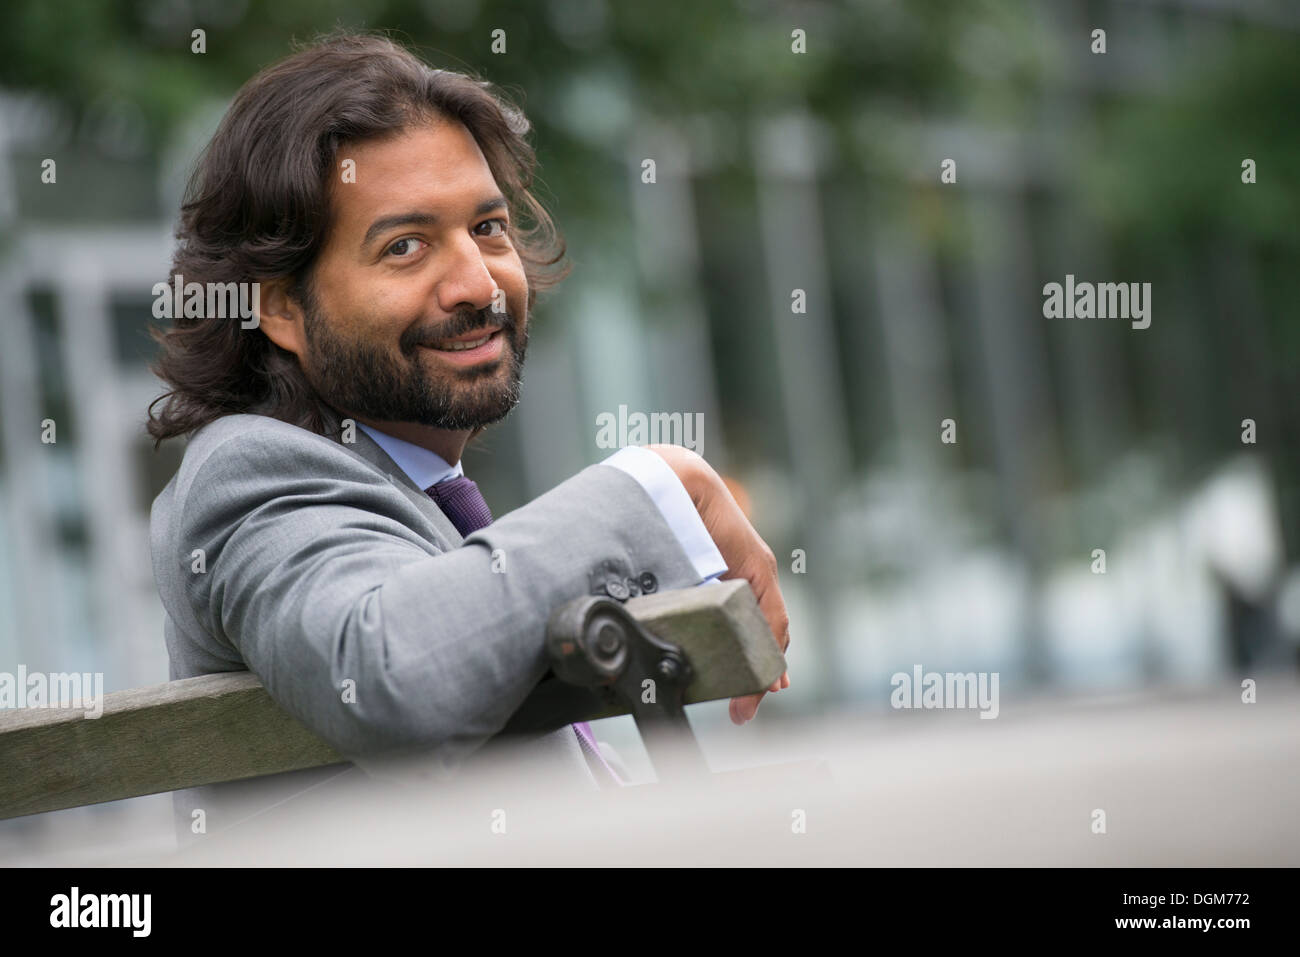 Business people. A man in a business suit with a full beard and curly hair. - Stock Image